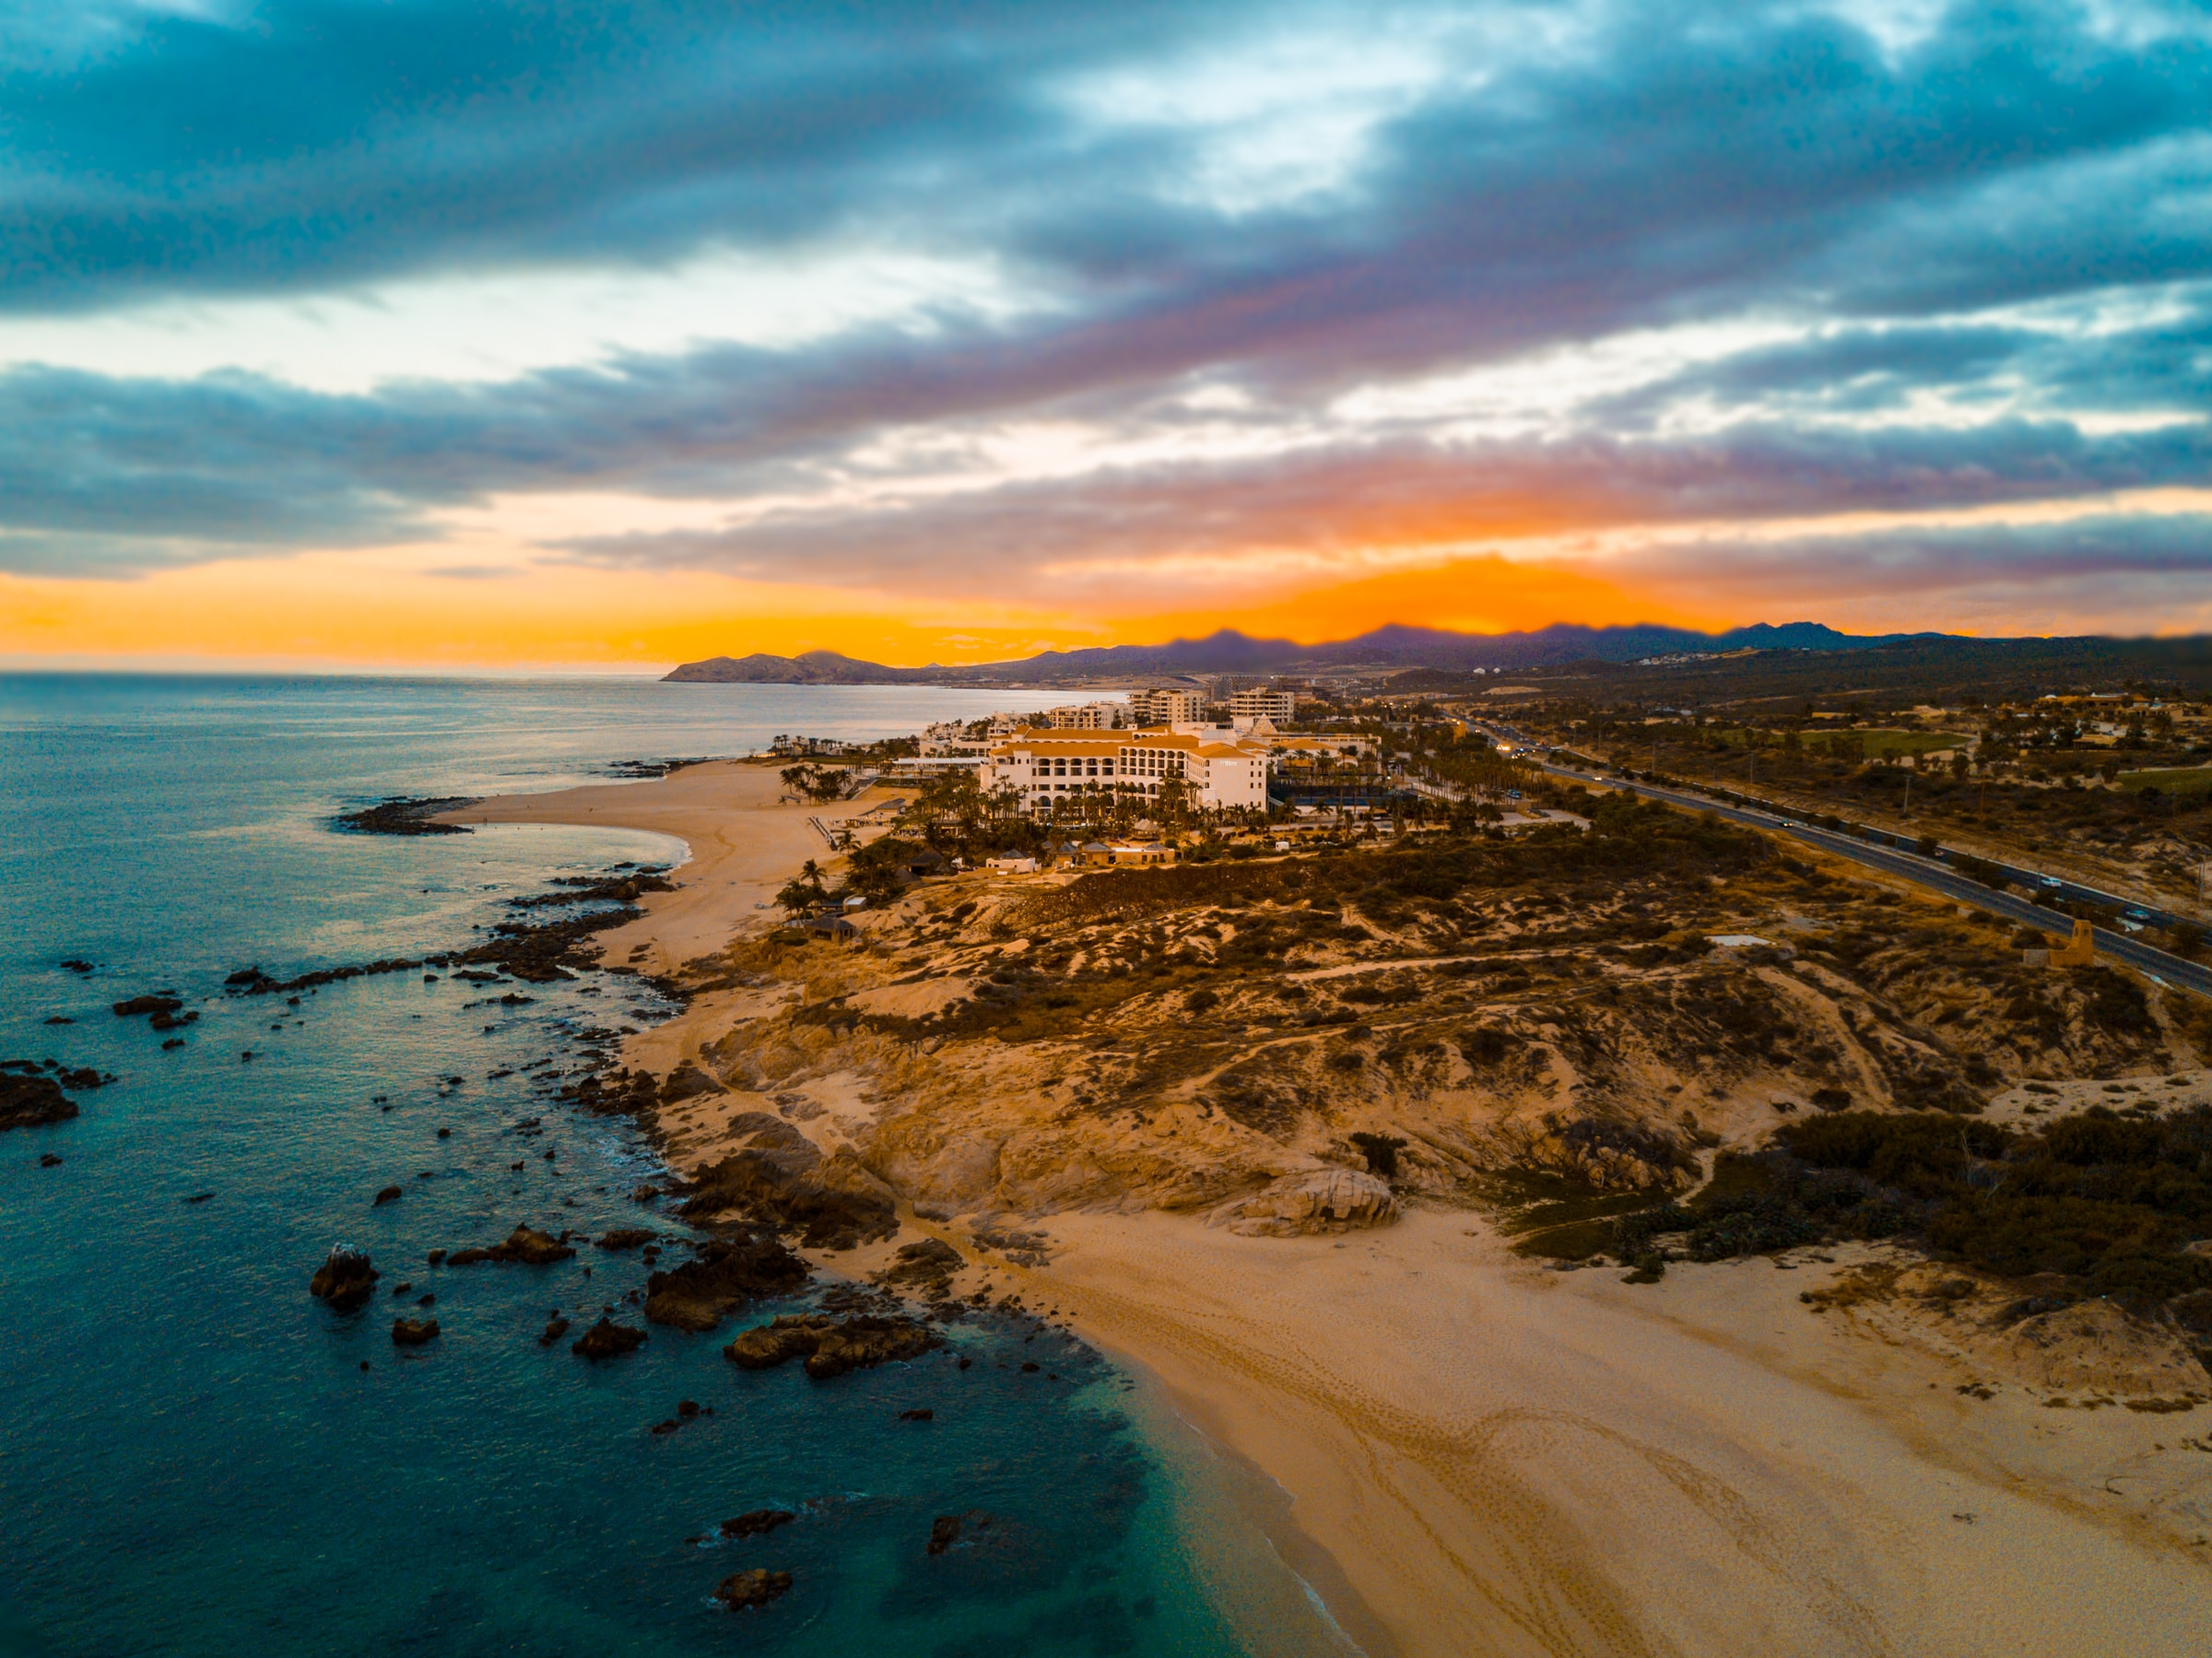 An orange sunset over a quiet coastal beach in San José del Cabo